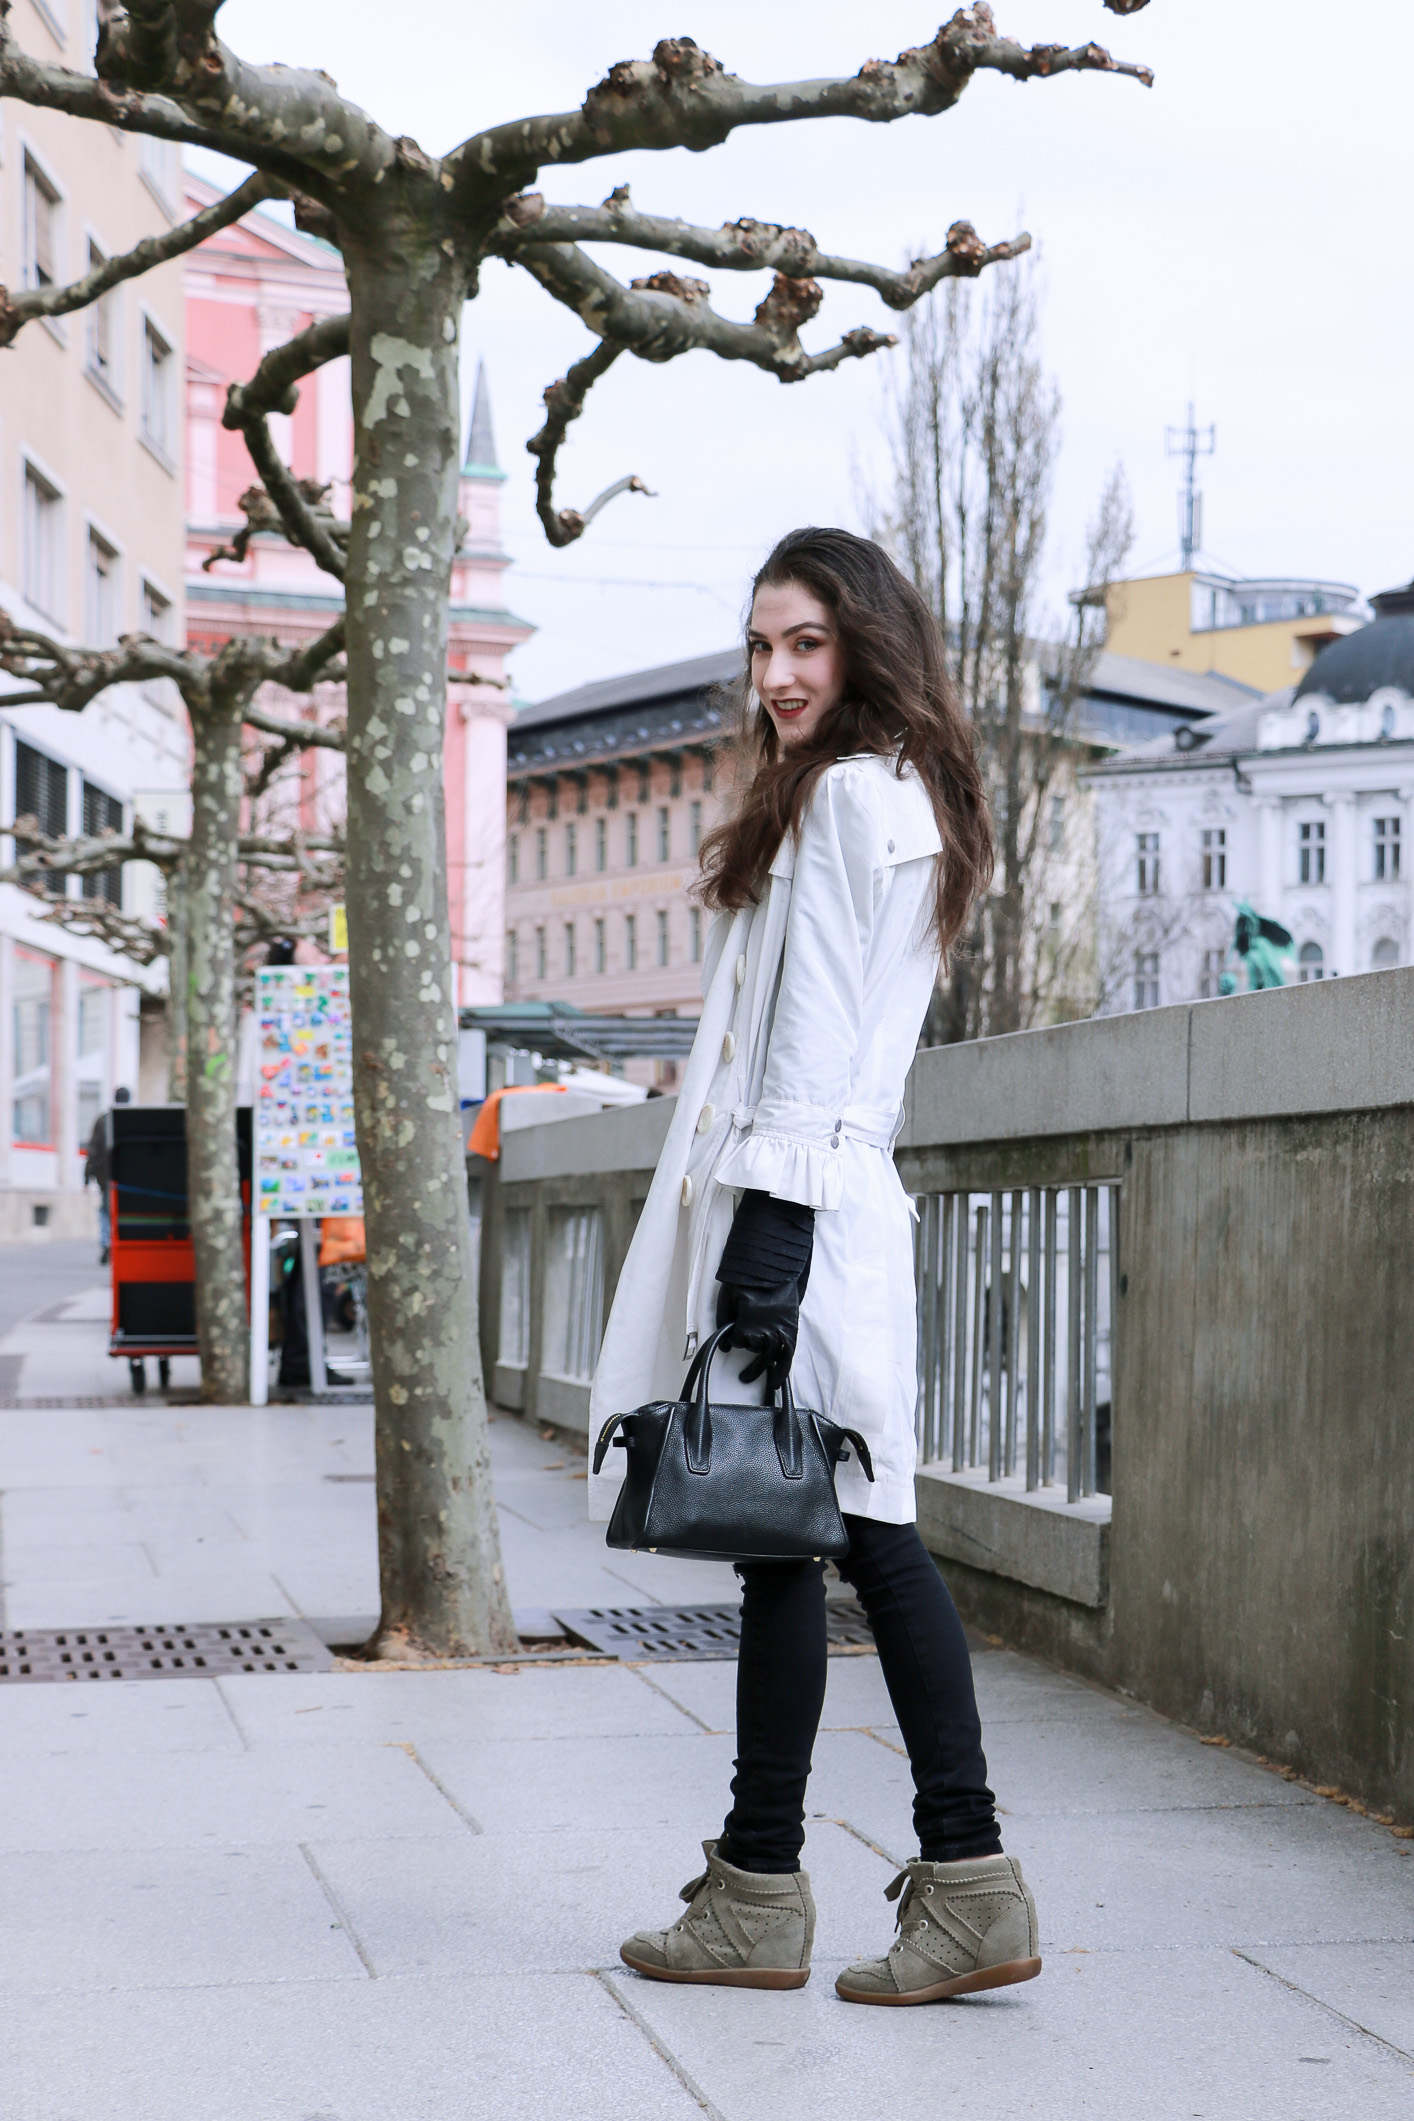 Fashion blogger Veronika Lipar of Brunette From Wall Street on how to look chic wearing ruffles